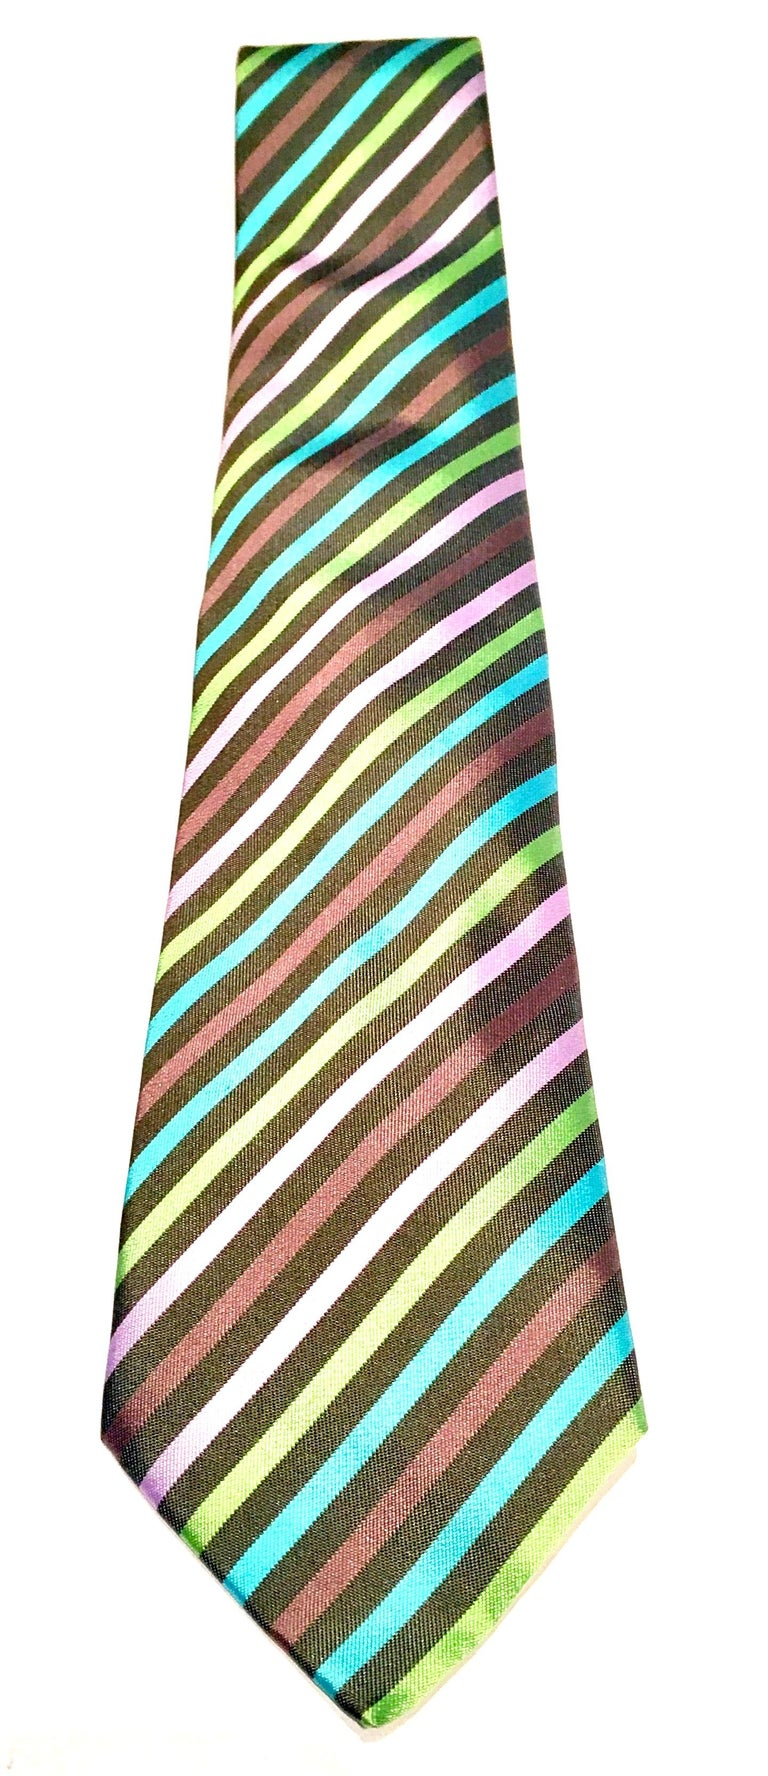 Contemporary Hermes Paris diagonal striped silk tie. Features a grey ground with pink, lime, lavender and turquoise stripes. Original authentic Hermes tags intact. Serial number reads, 758610T.